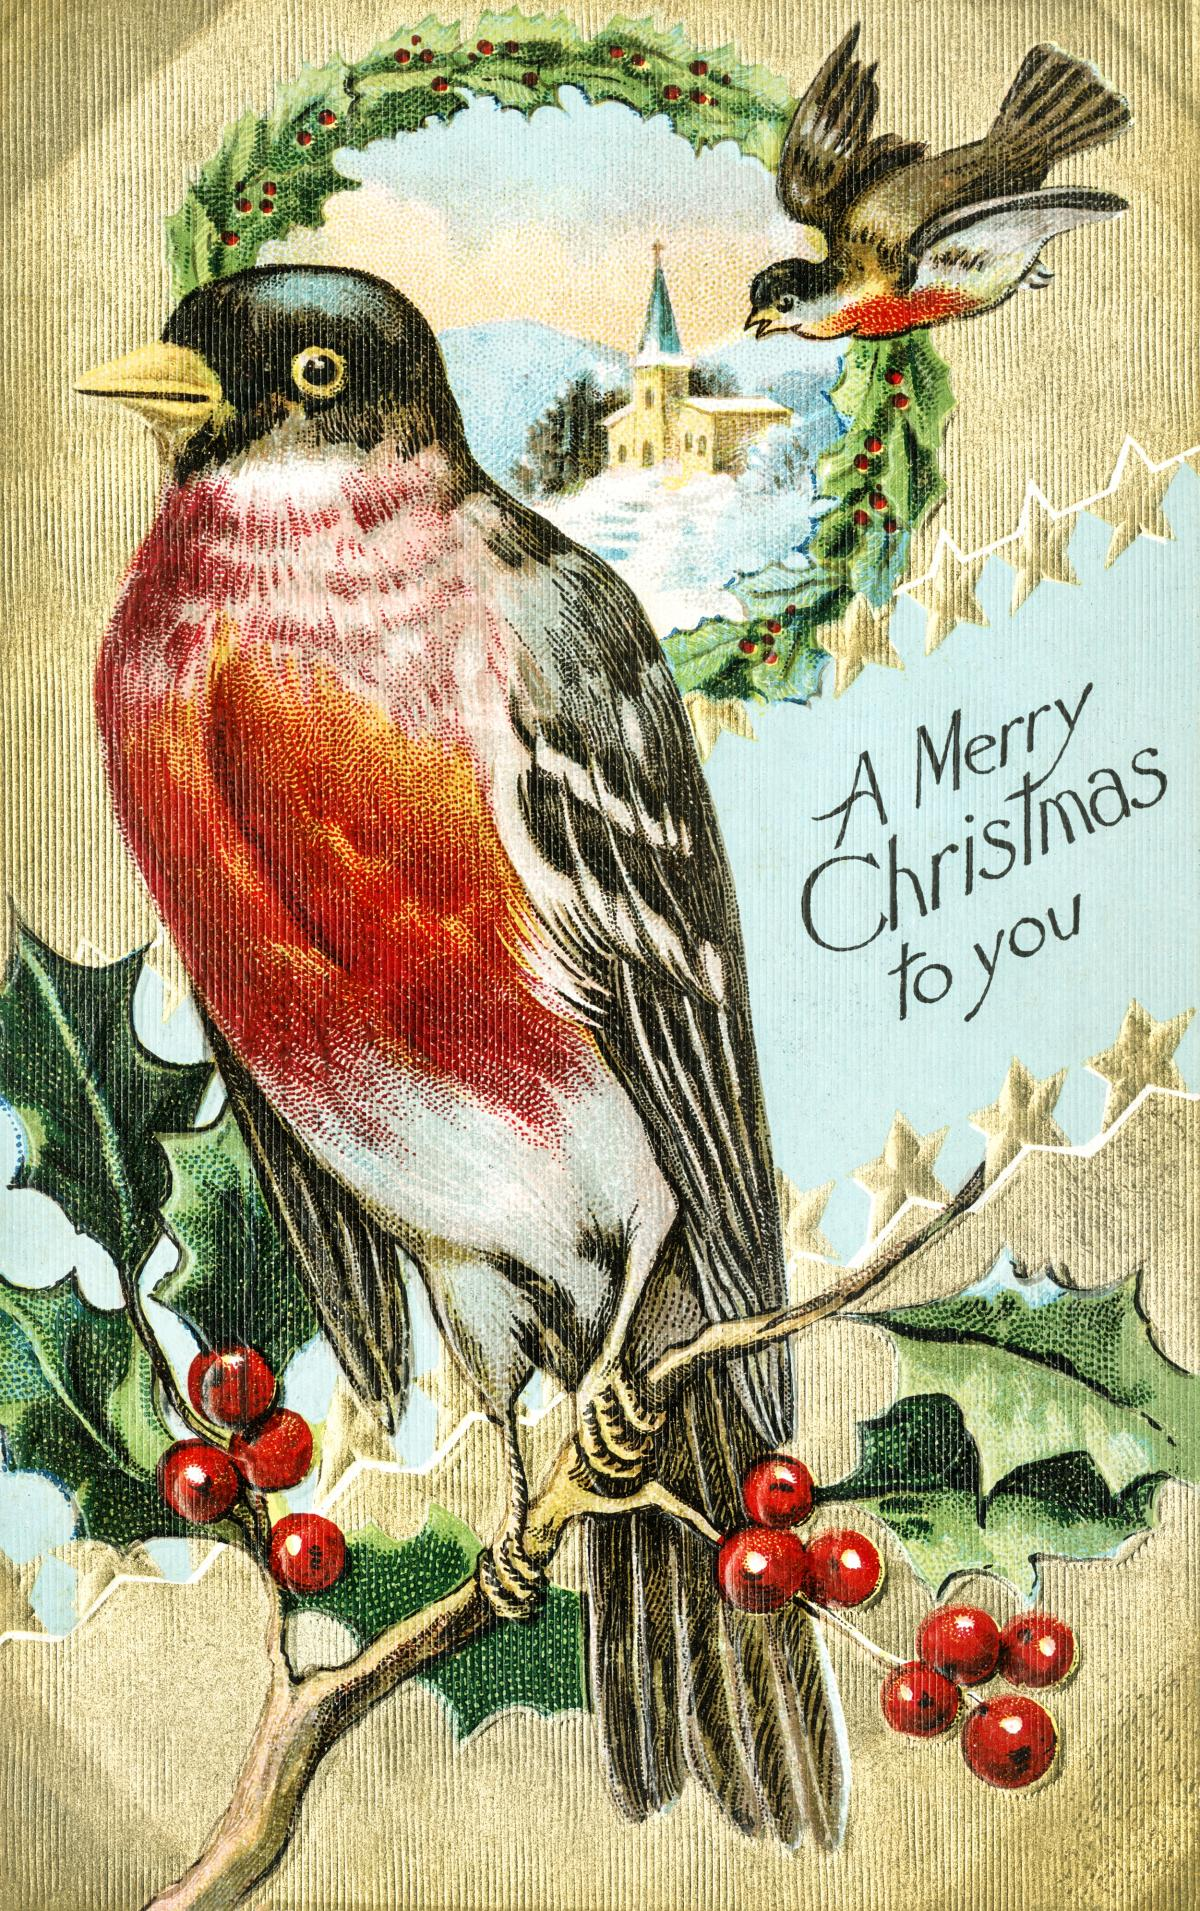 Vintage Christmas Postcard (1908) by Bamforth & Co. Original from The New York Public Library.